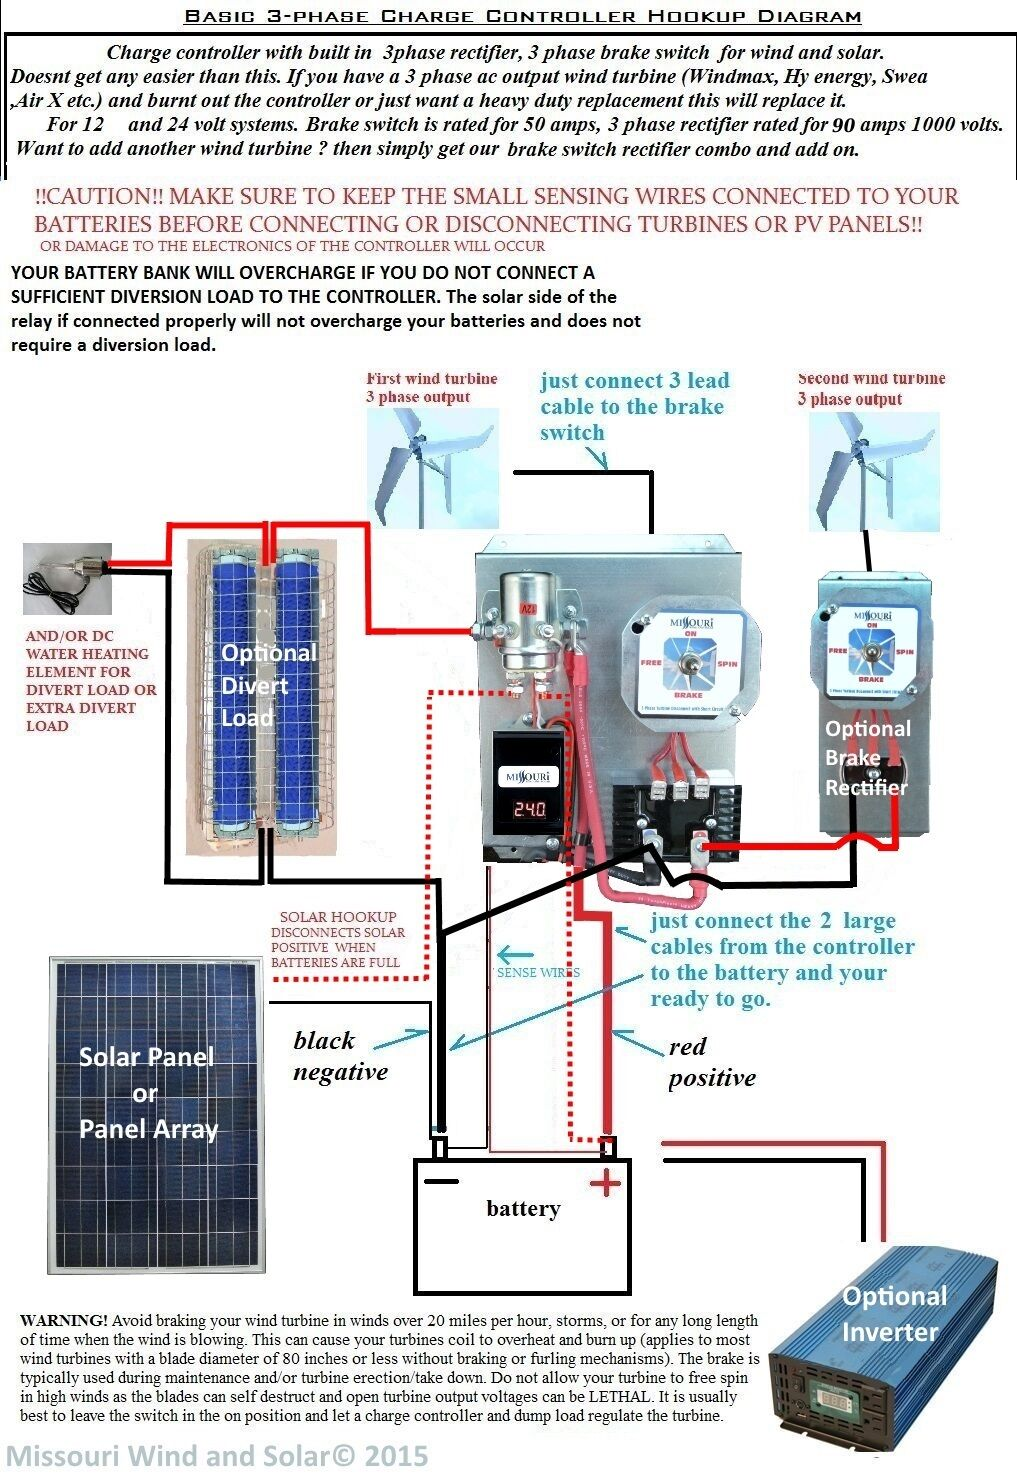 12 Volt Digital Charge Controller With Brake Switch 4 Wind Turbine Wiring Diagram Diagrams 3 Phase Missouri And Solar